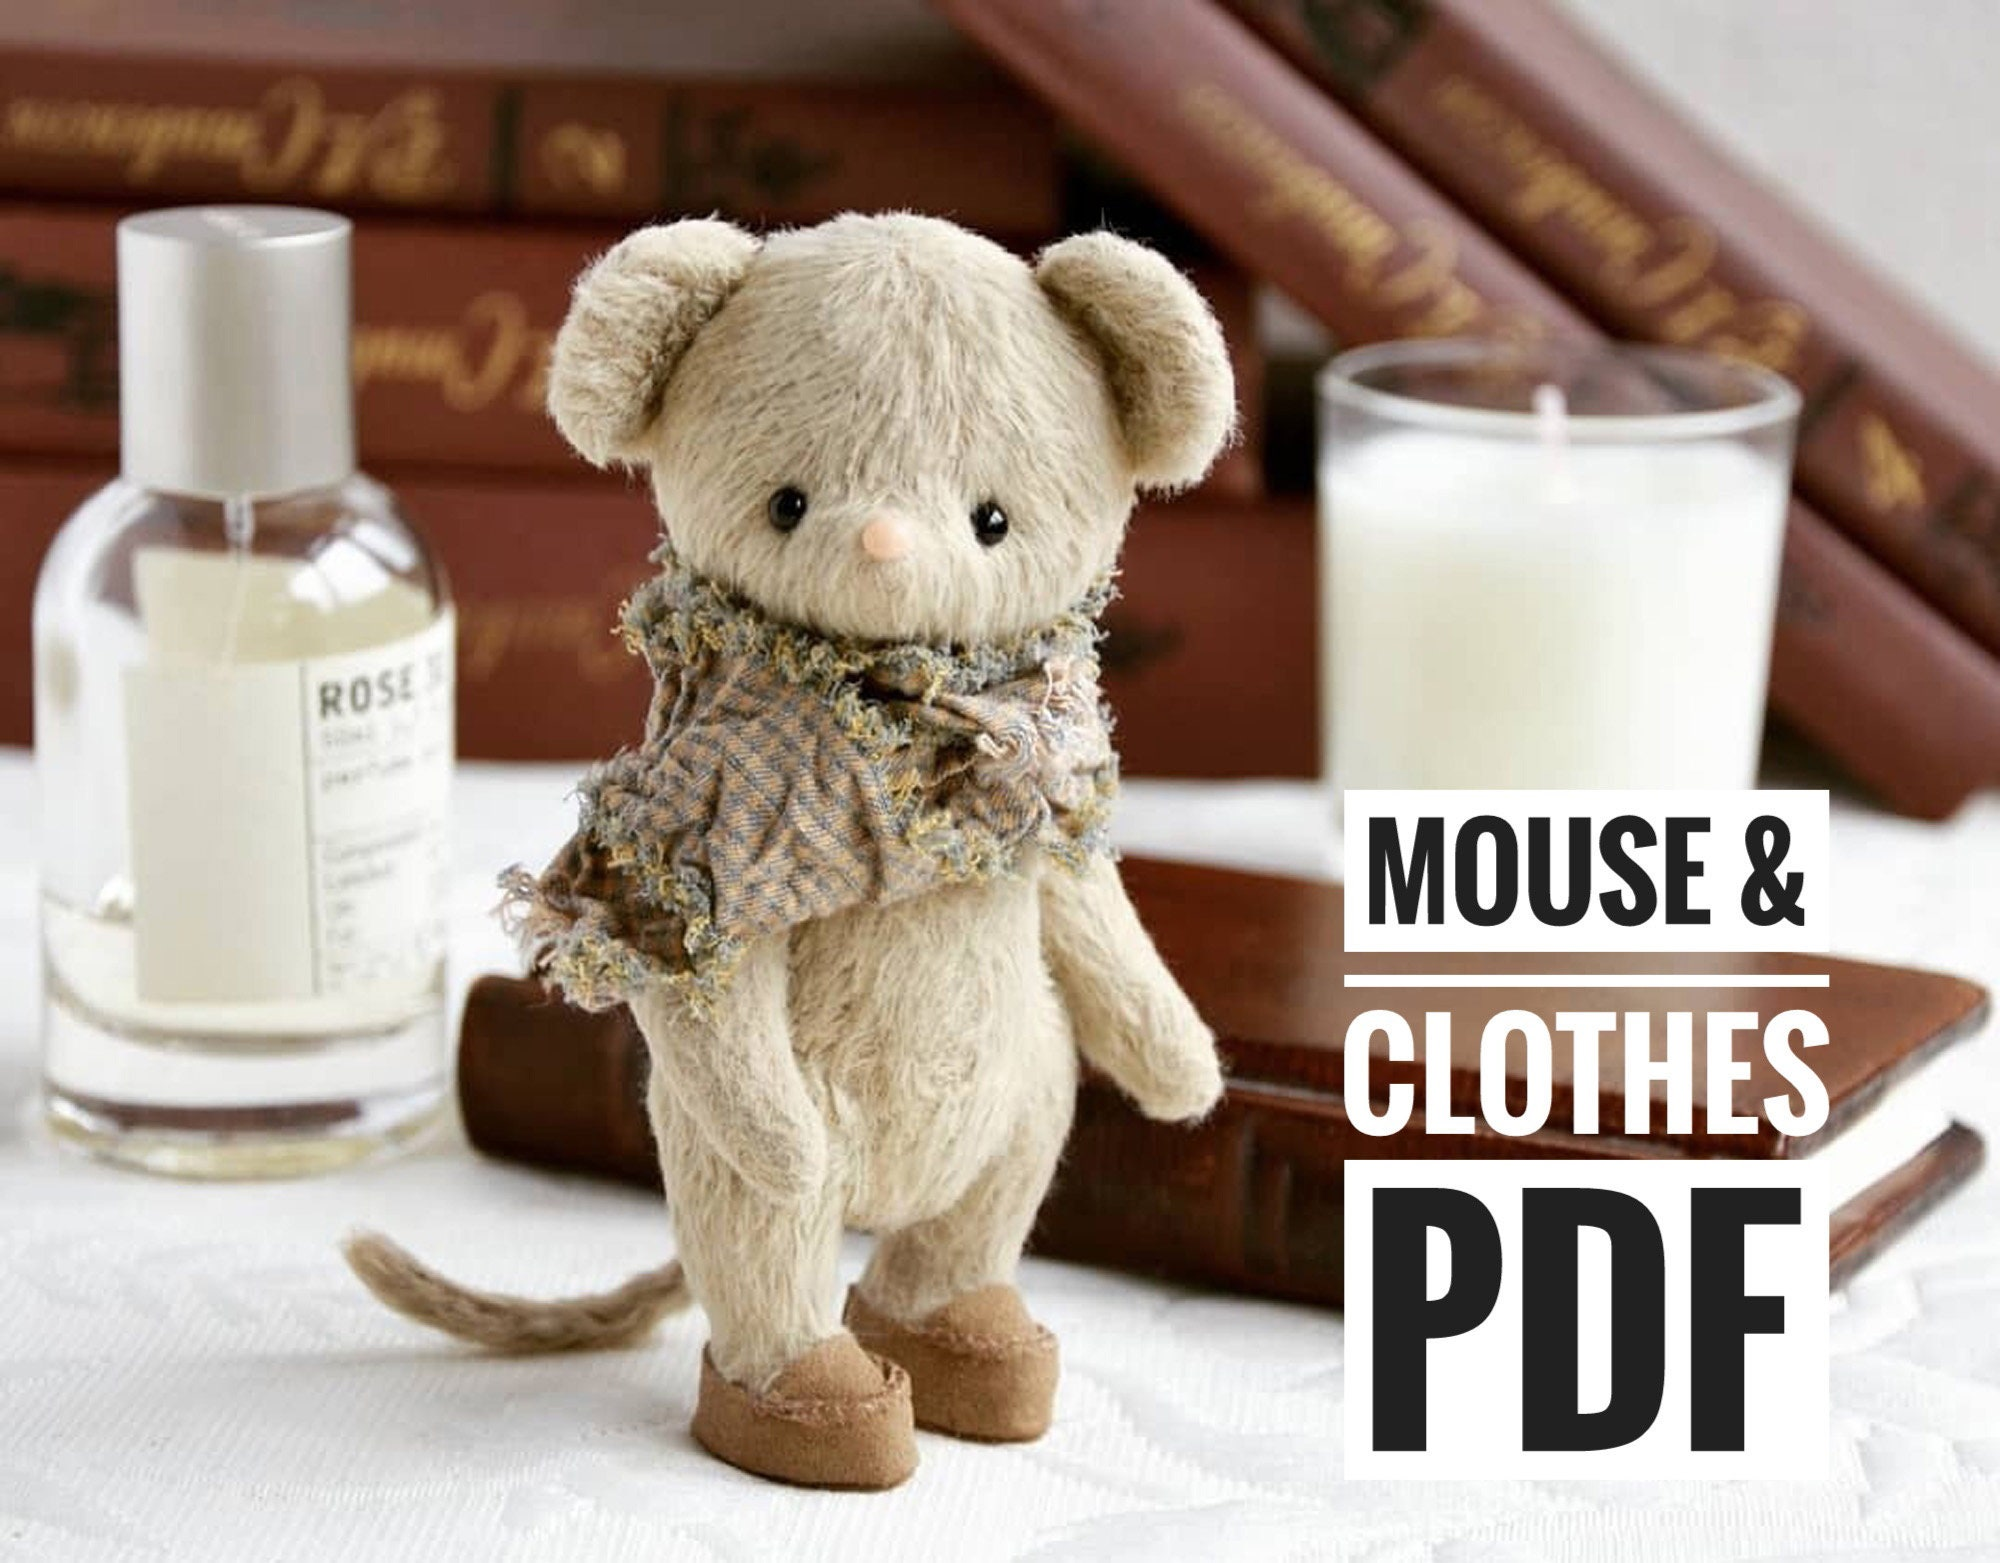 Teddy mouse sewing pattern Pocket mouse pattern Teddy Mouse Pattern Sewing Pattern Teddy bear Mouse plush stuffed toy Mouse toy pattern